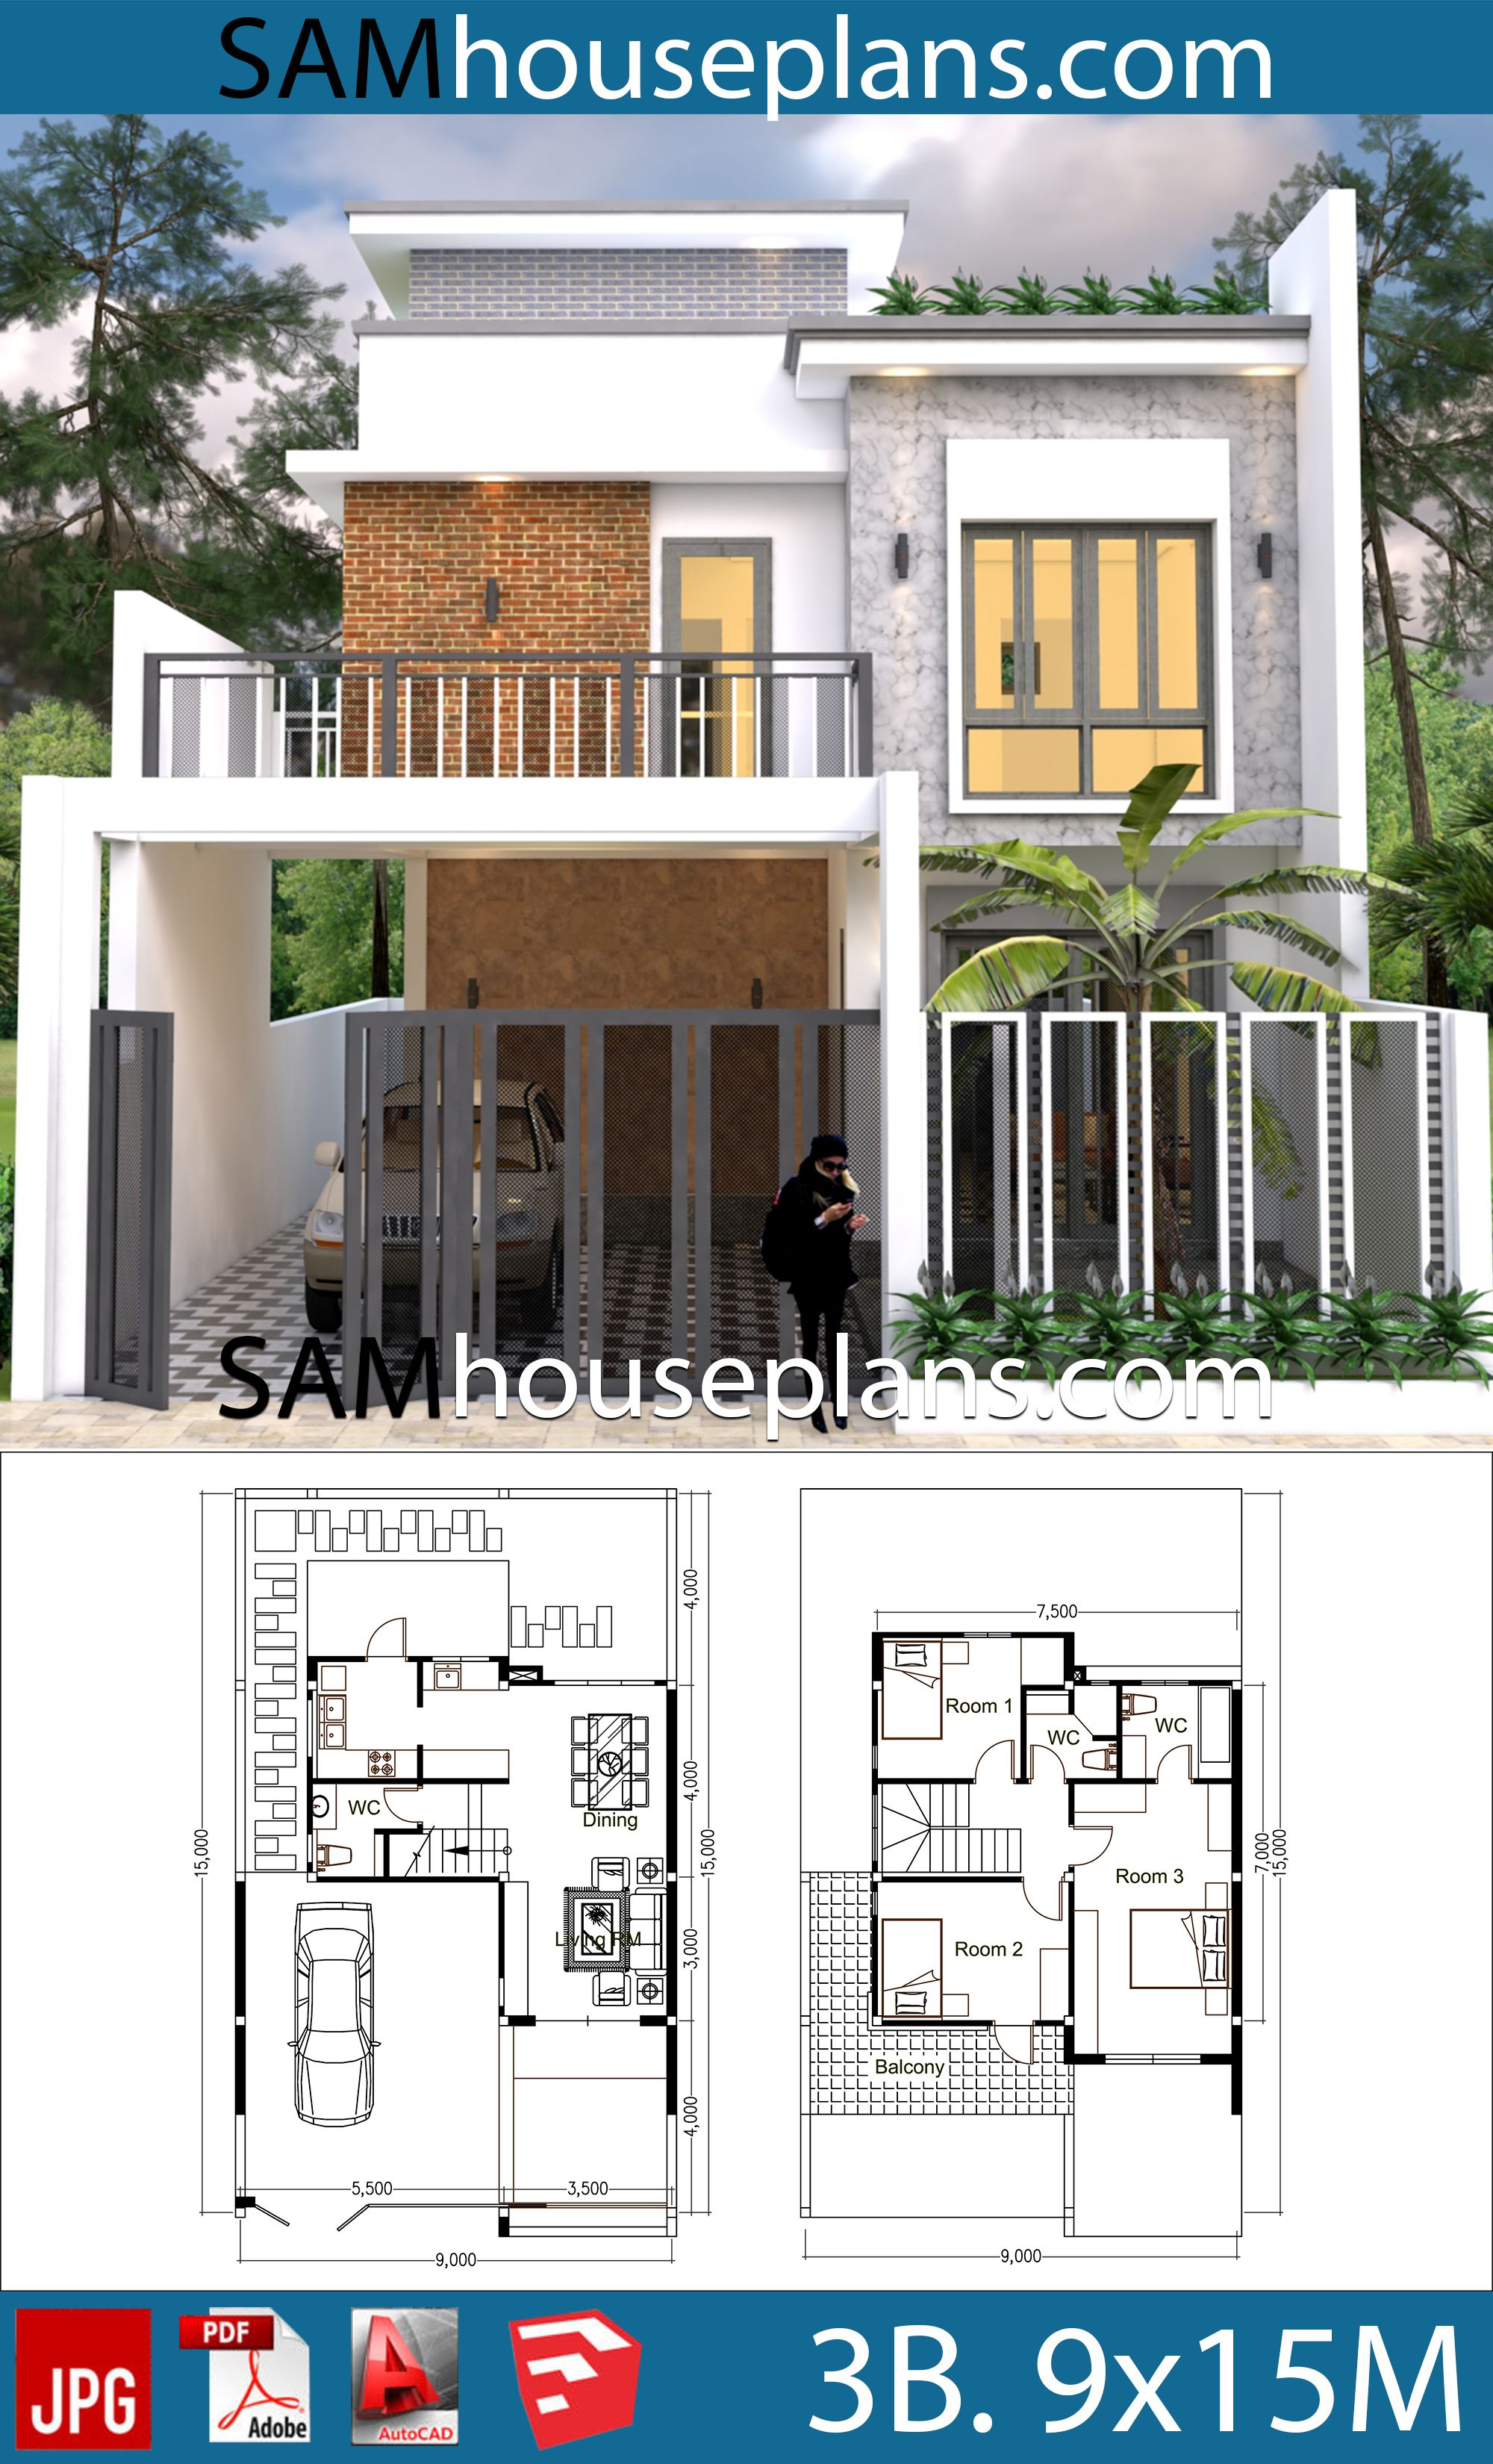 My 3d Room Design: House Plans 9x15 With 3 Bedrooms